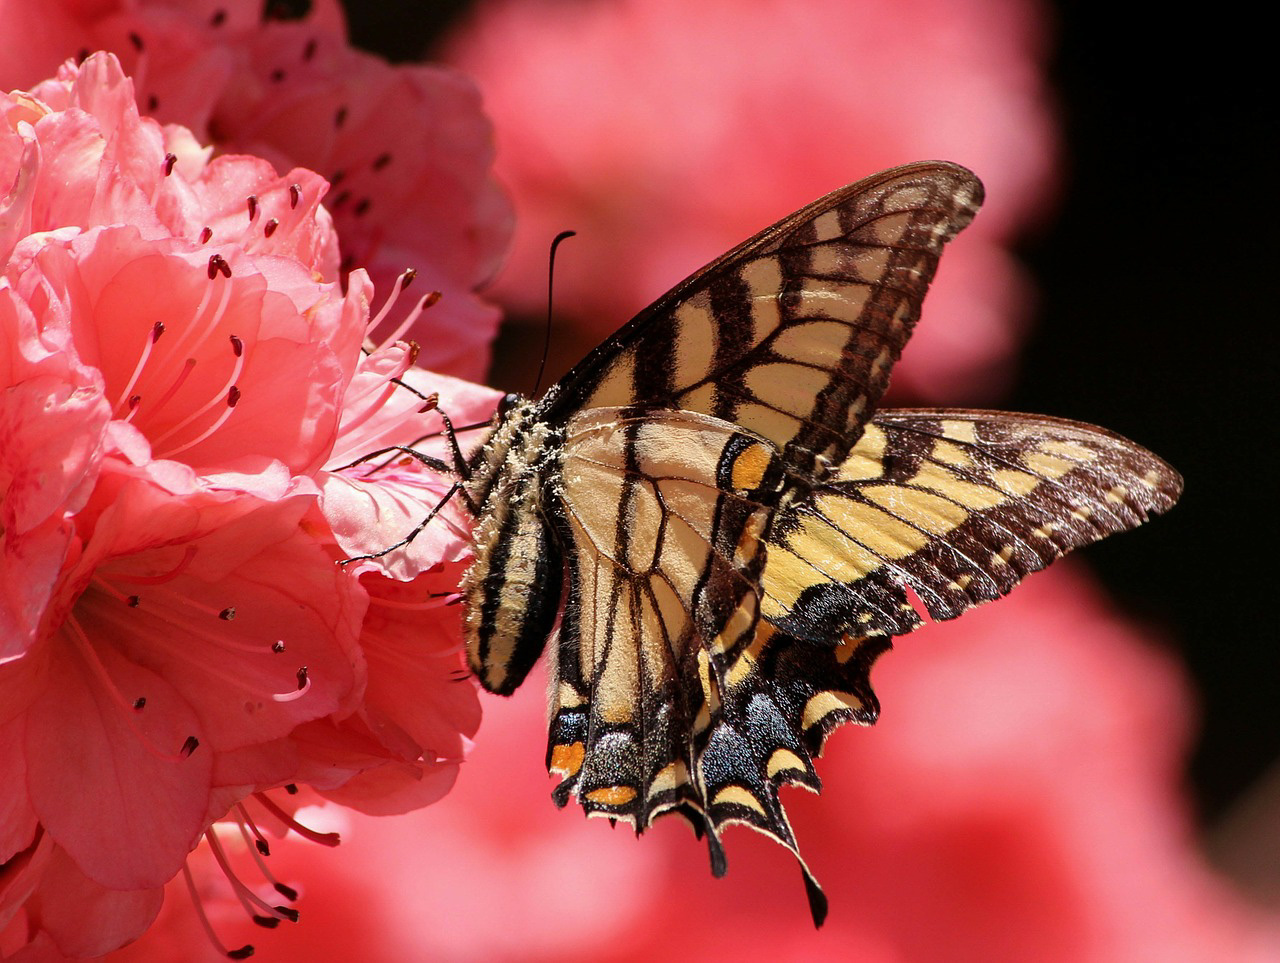 butterfly-108616_1280_edited